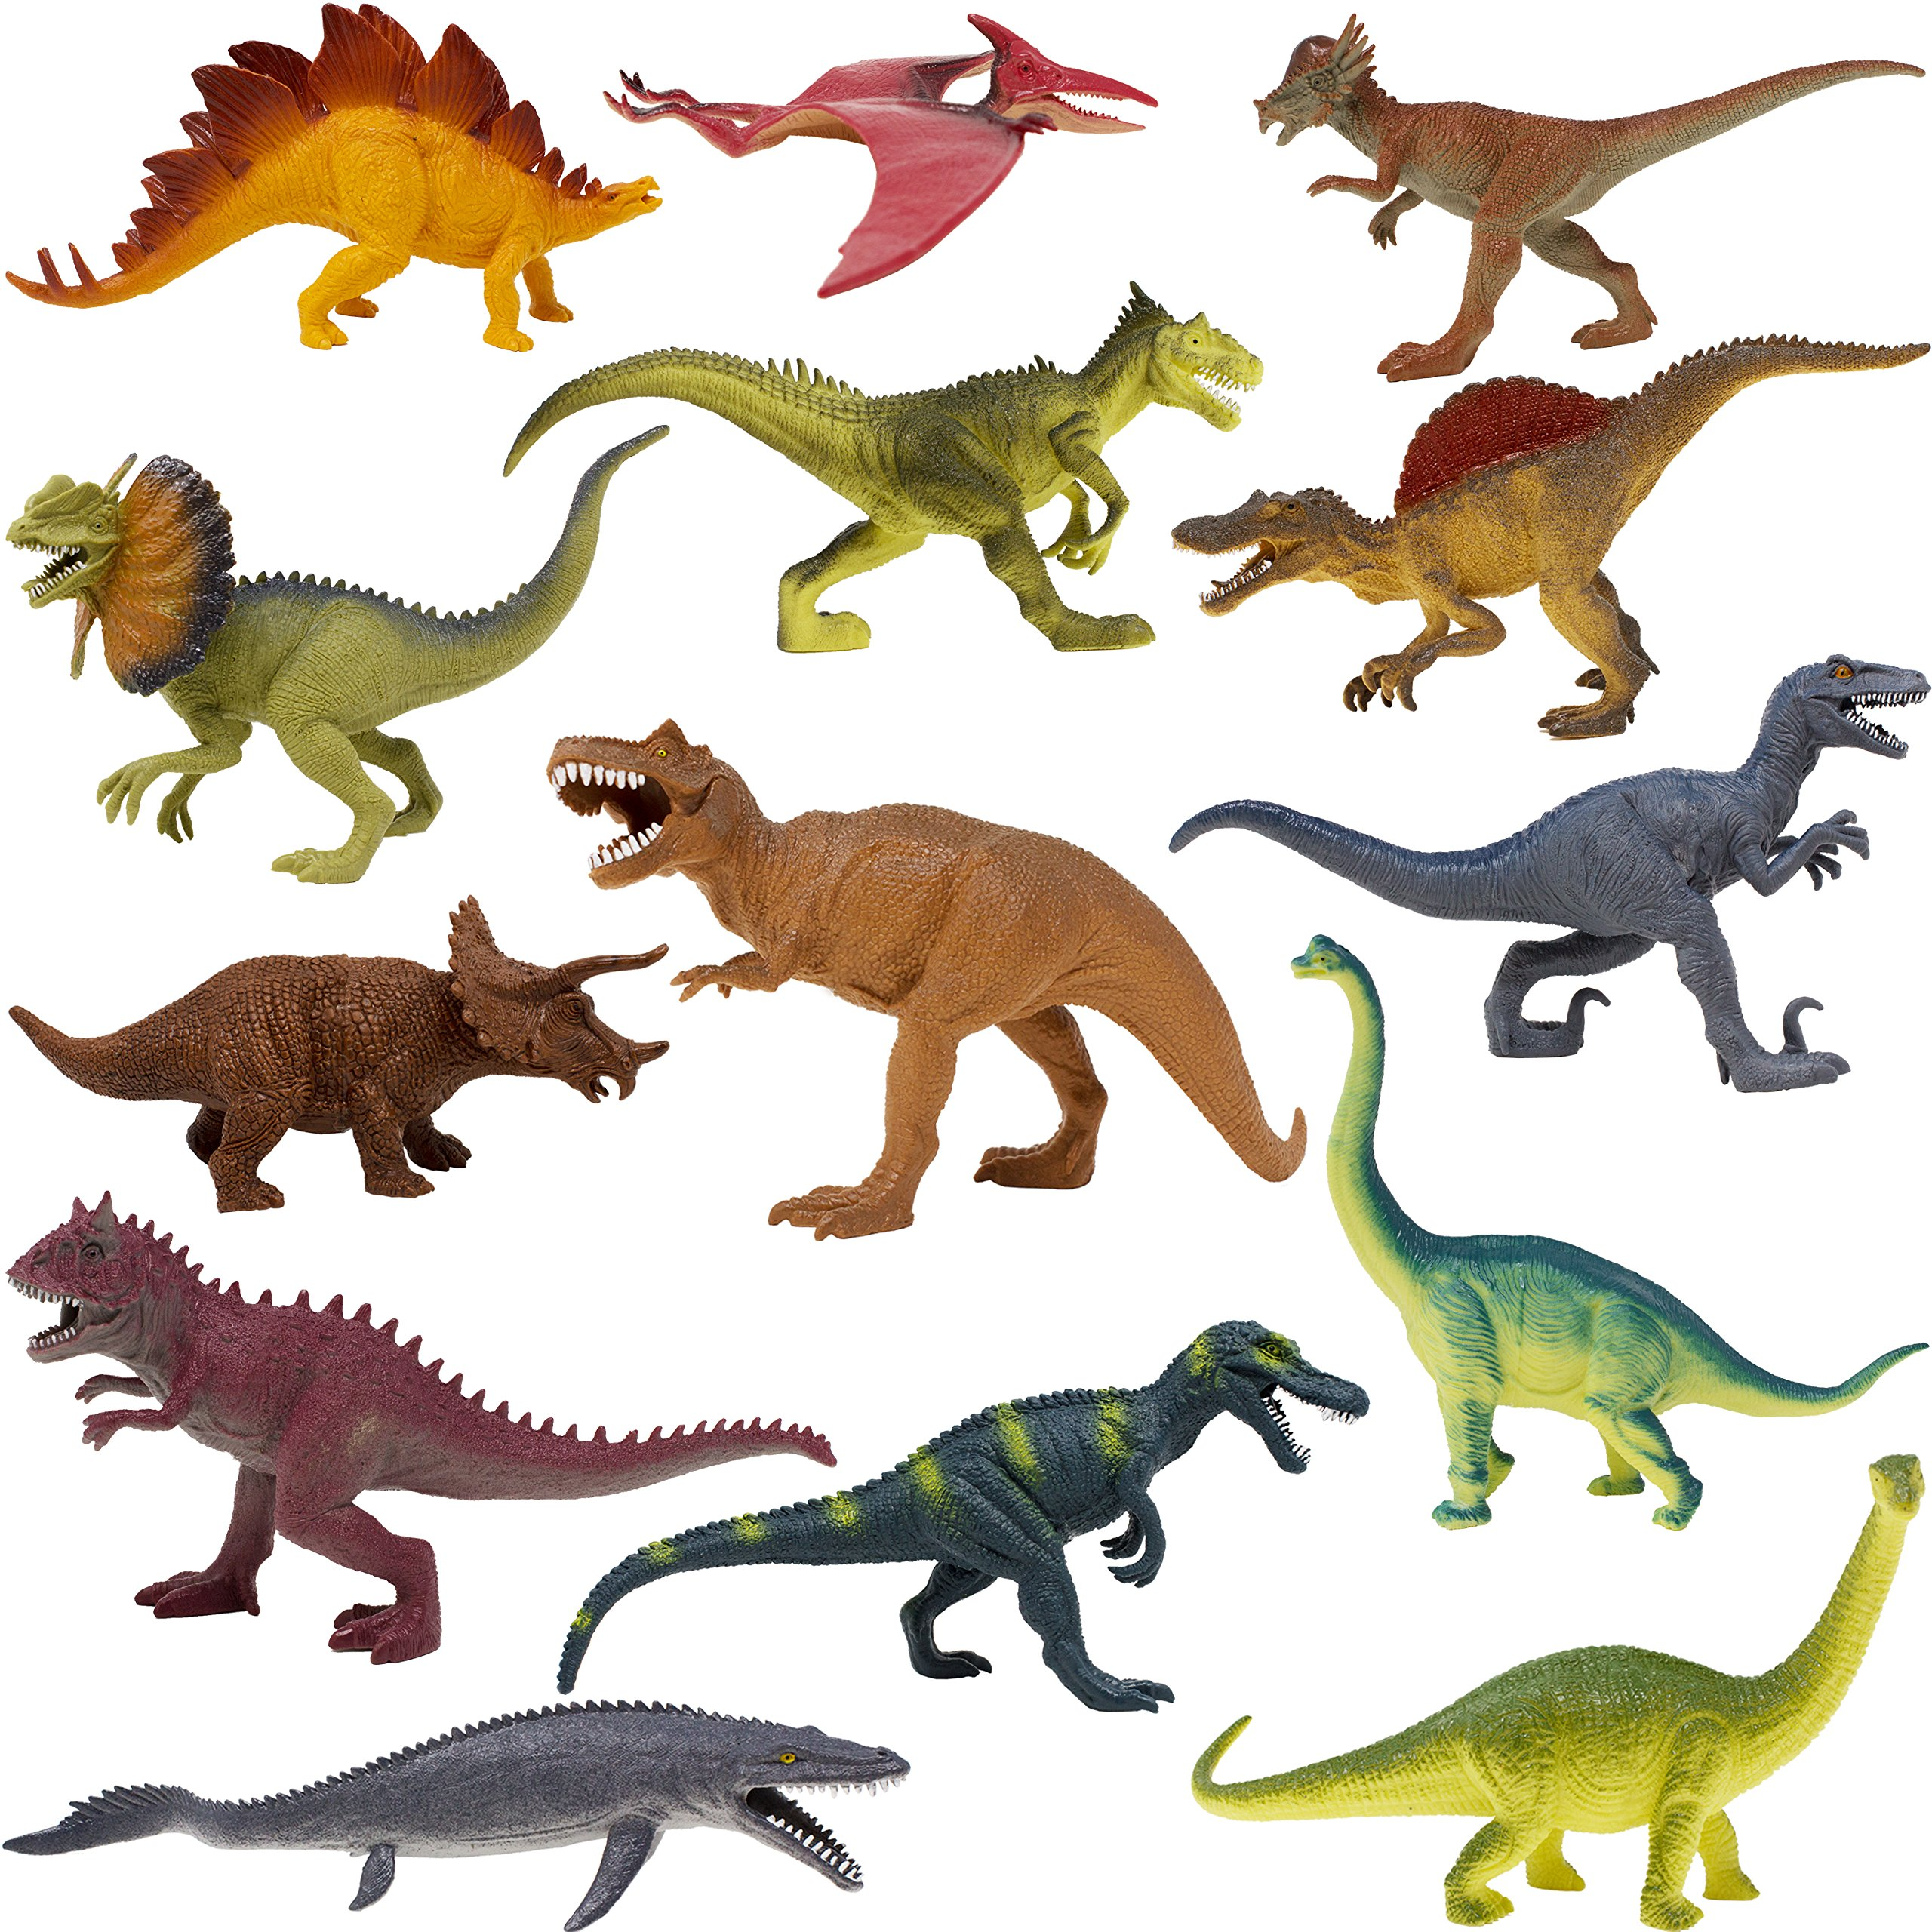 Boley 14-Pack 10 Inch Educational Dinosaur Toys - Realistic Educational Toy Dinosaur Figures For Kids, Children, Toddlers - Great Gift Set, Birthday Present, or Party Favor! by Boley